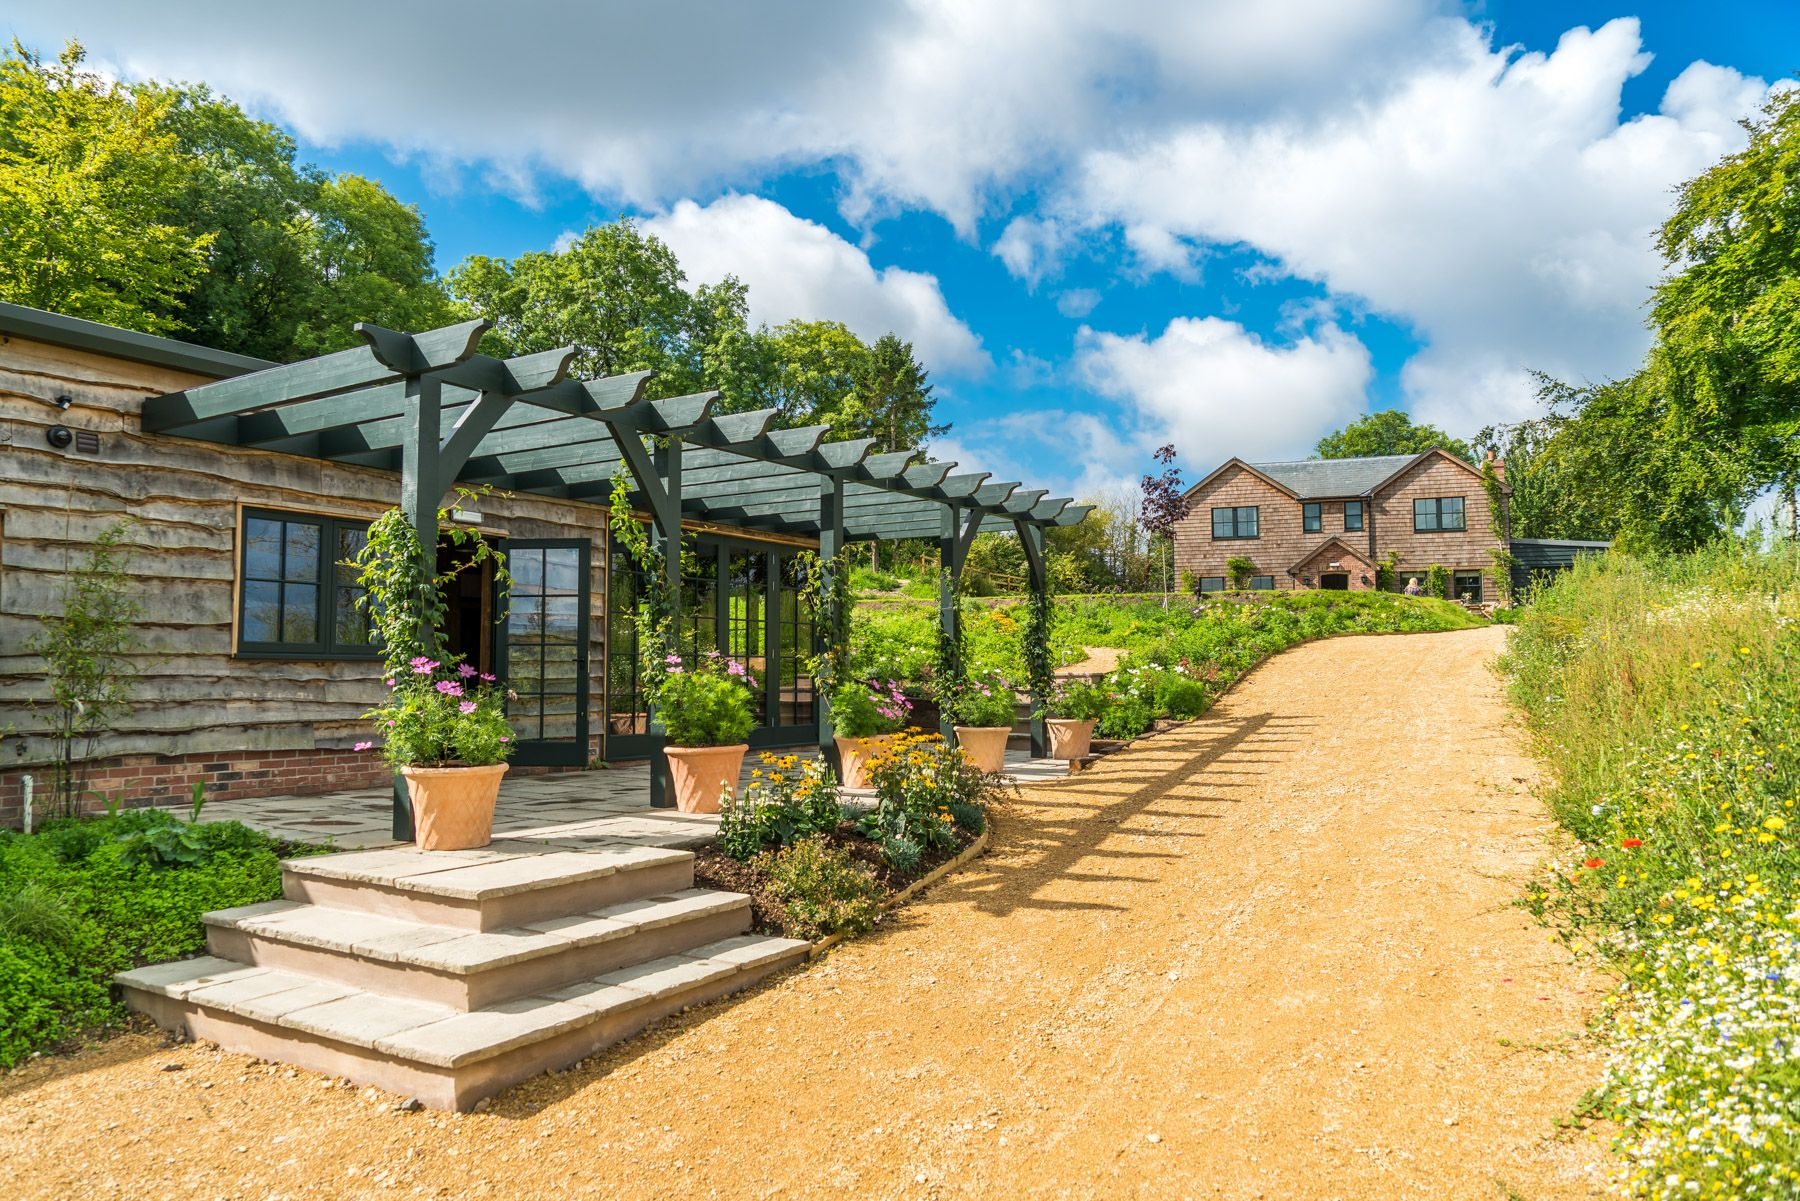 Hillside Country House · Hillside Spa Leading To The Country House ...